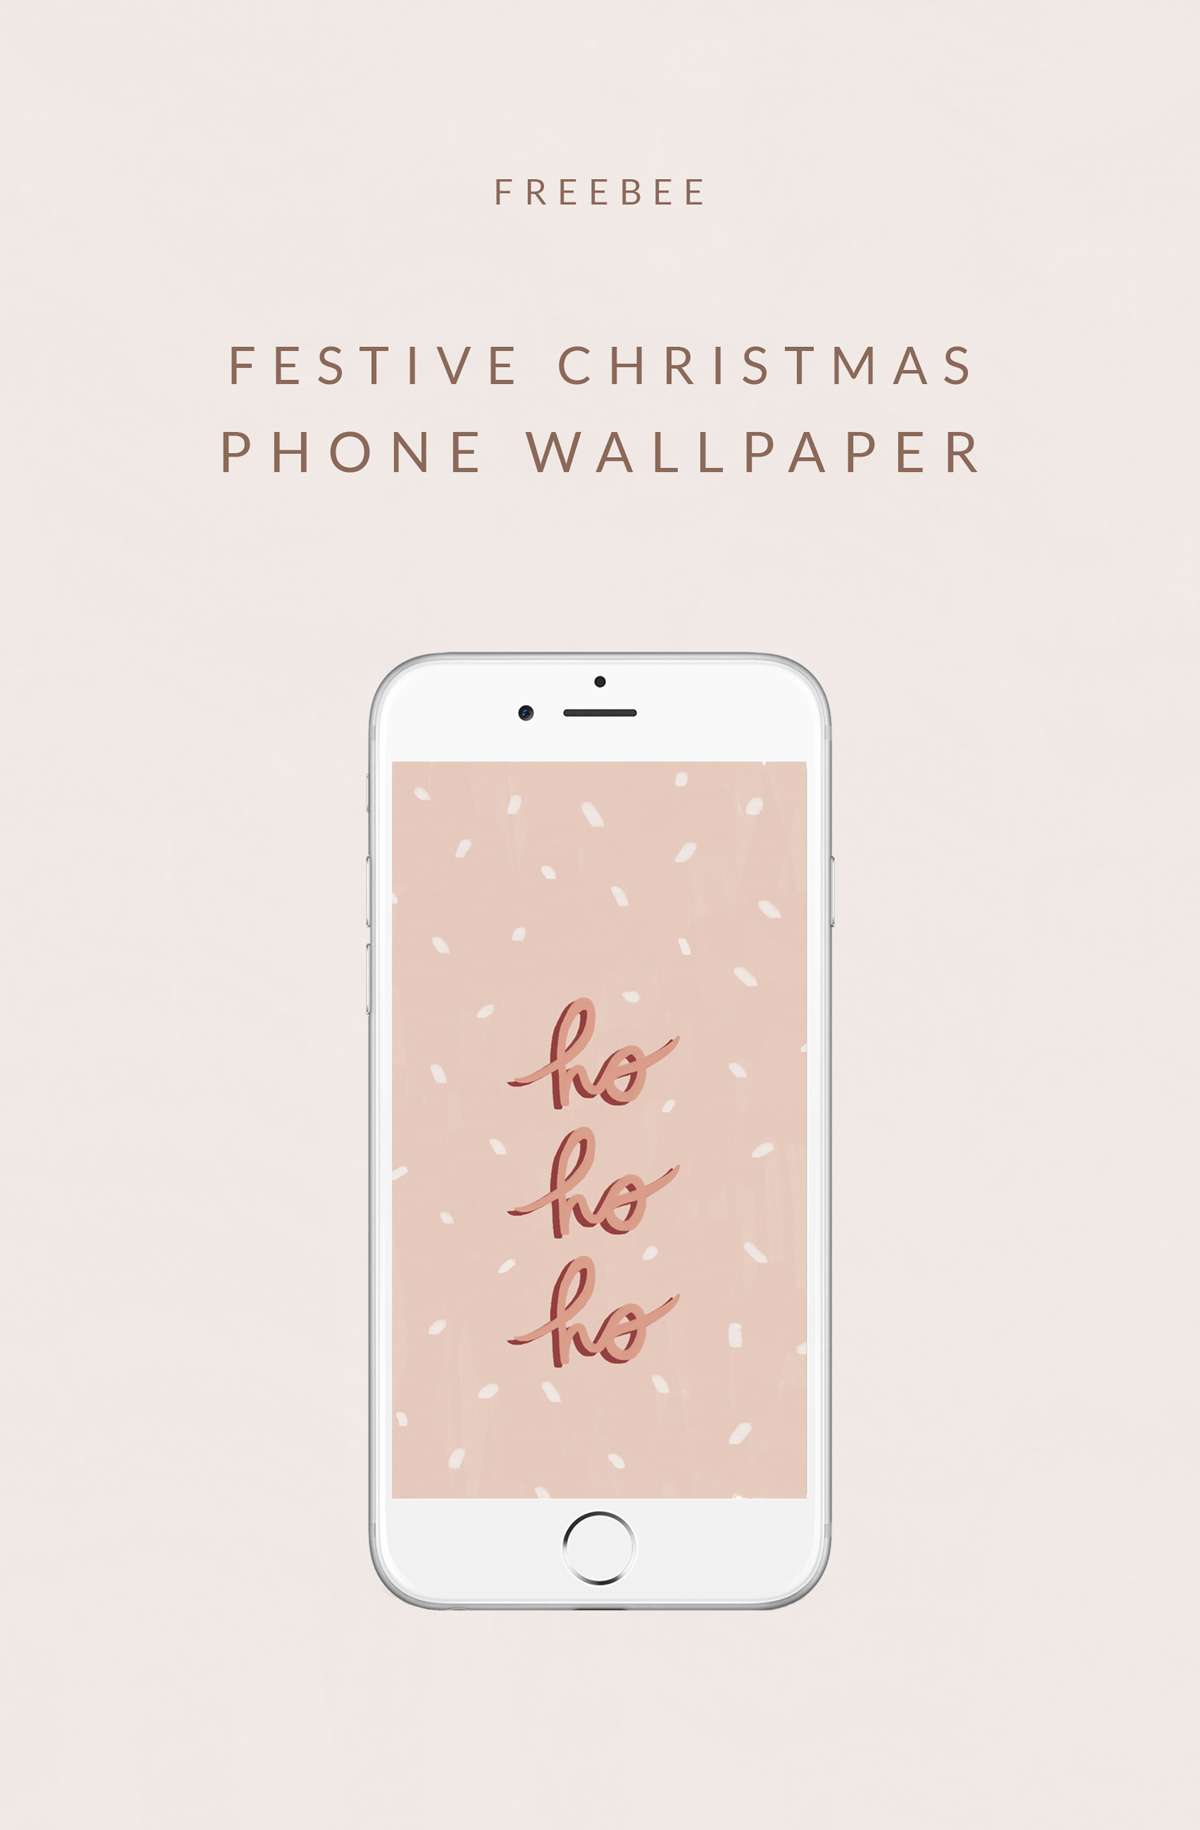 Freebee - festive phone wallpaper - Ho Ho Ho